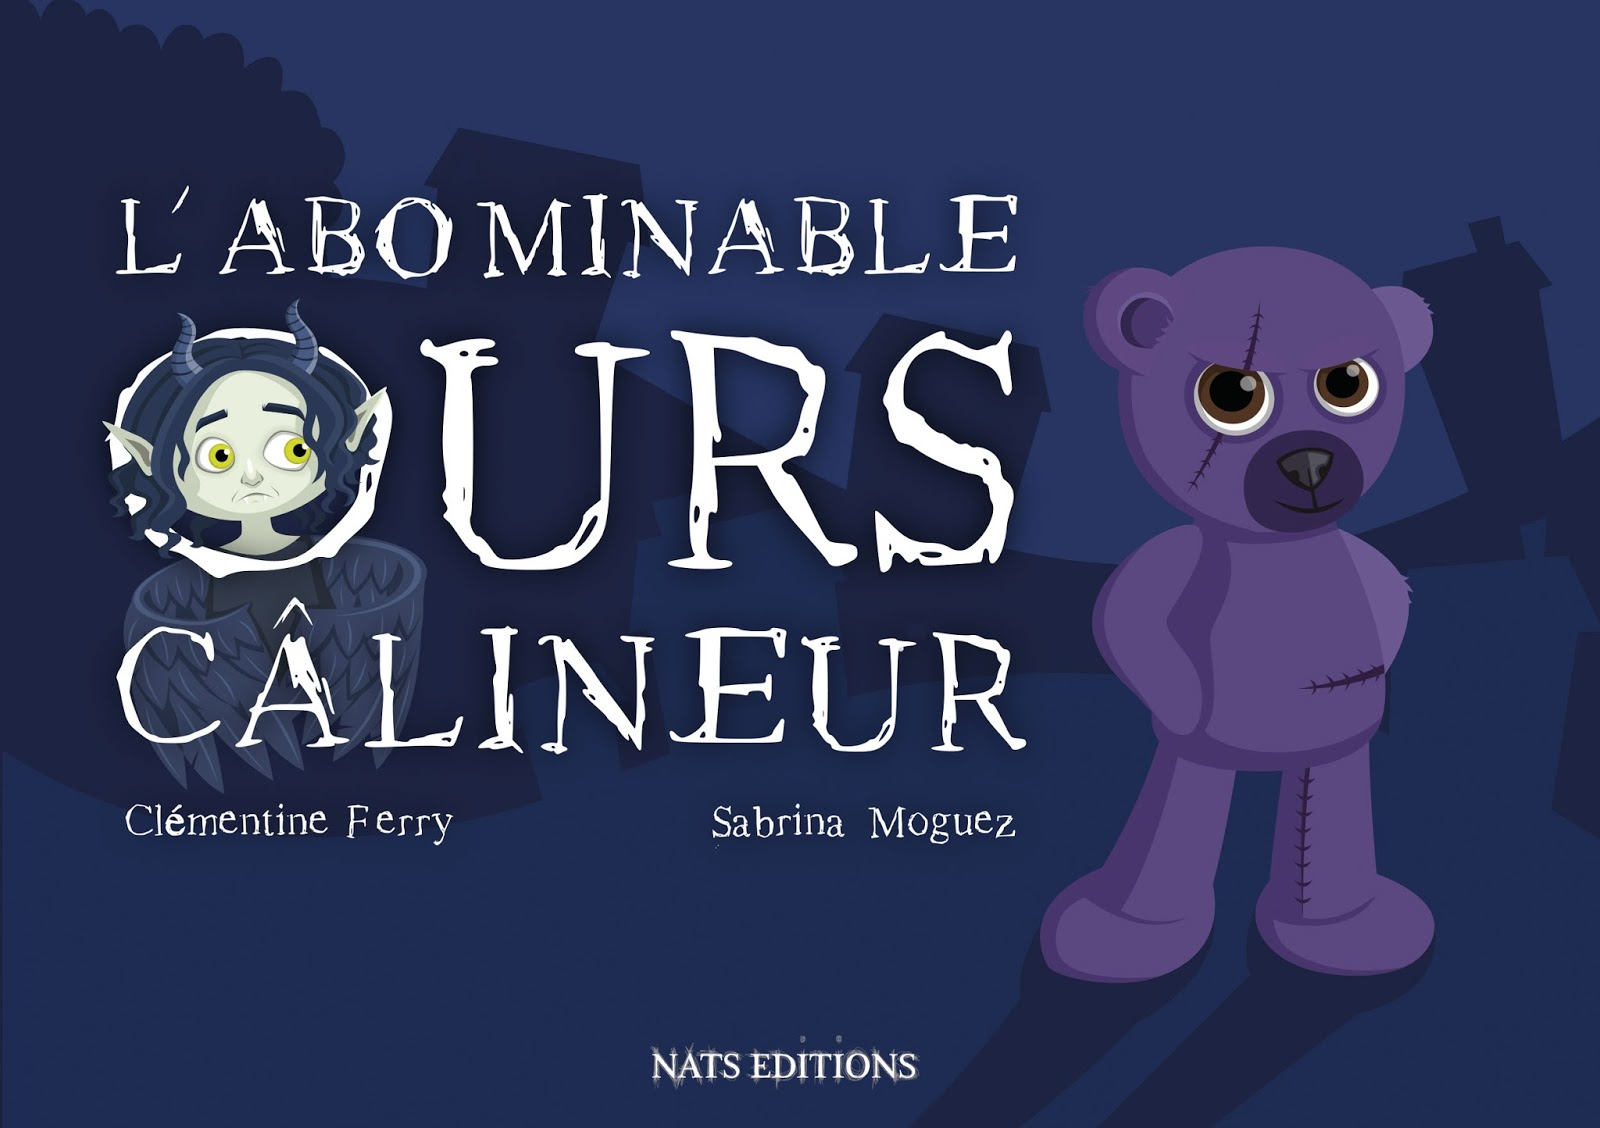 http://blog.nats-editions.com/2017/04/labominable-ours-calineur-interview.html